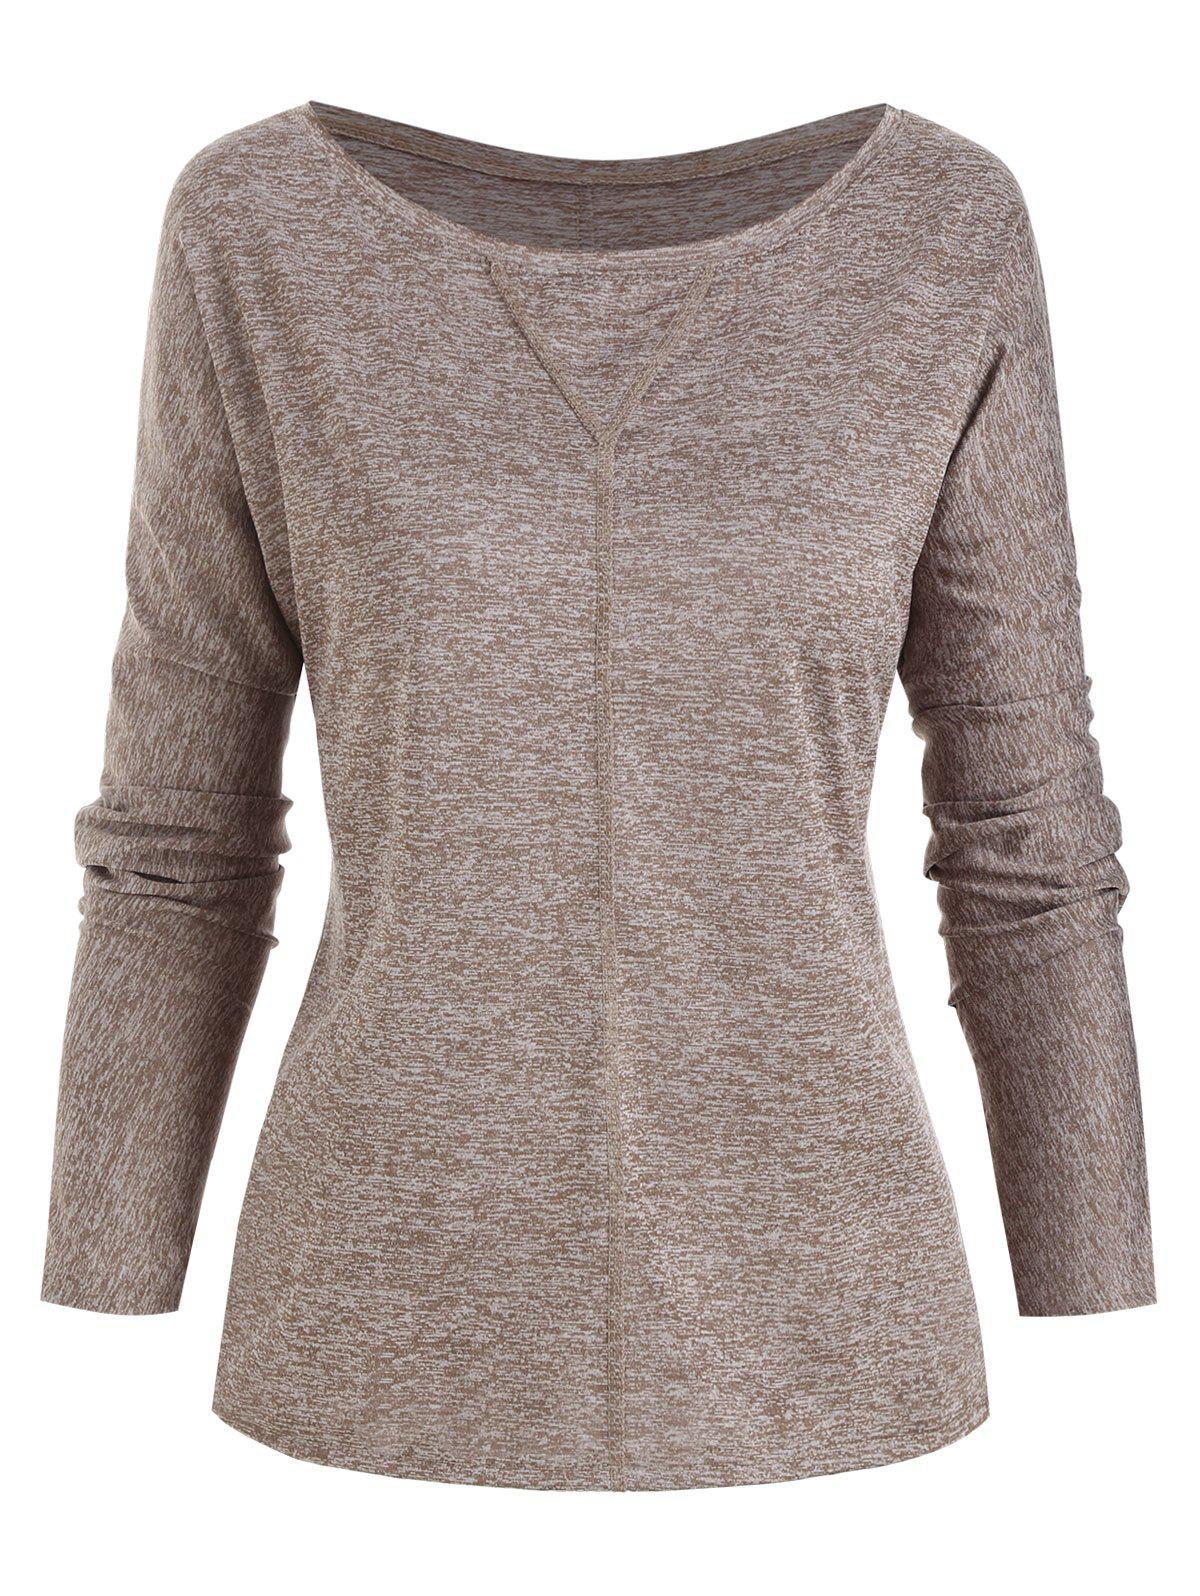 Shop Topstitching Heathered Long Sleeve Top